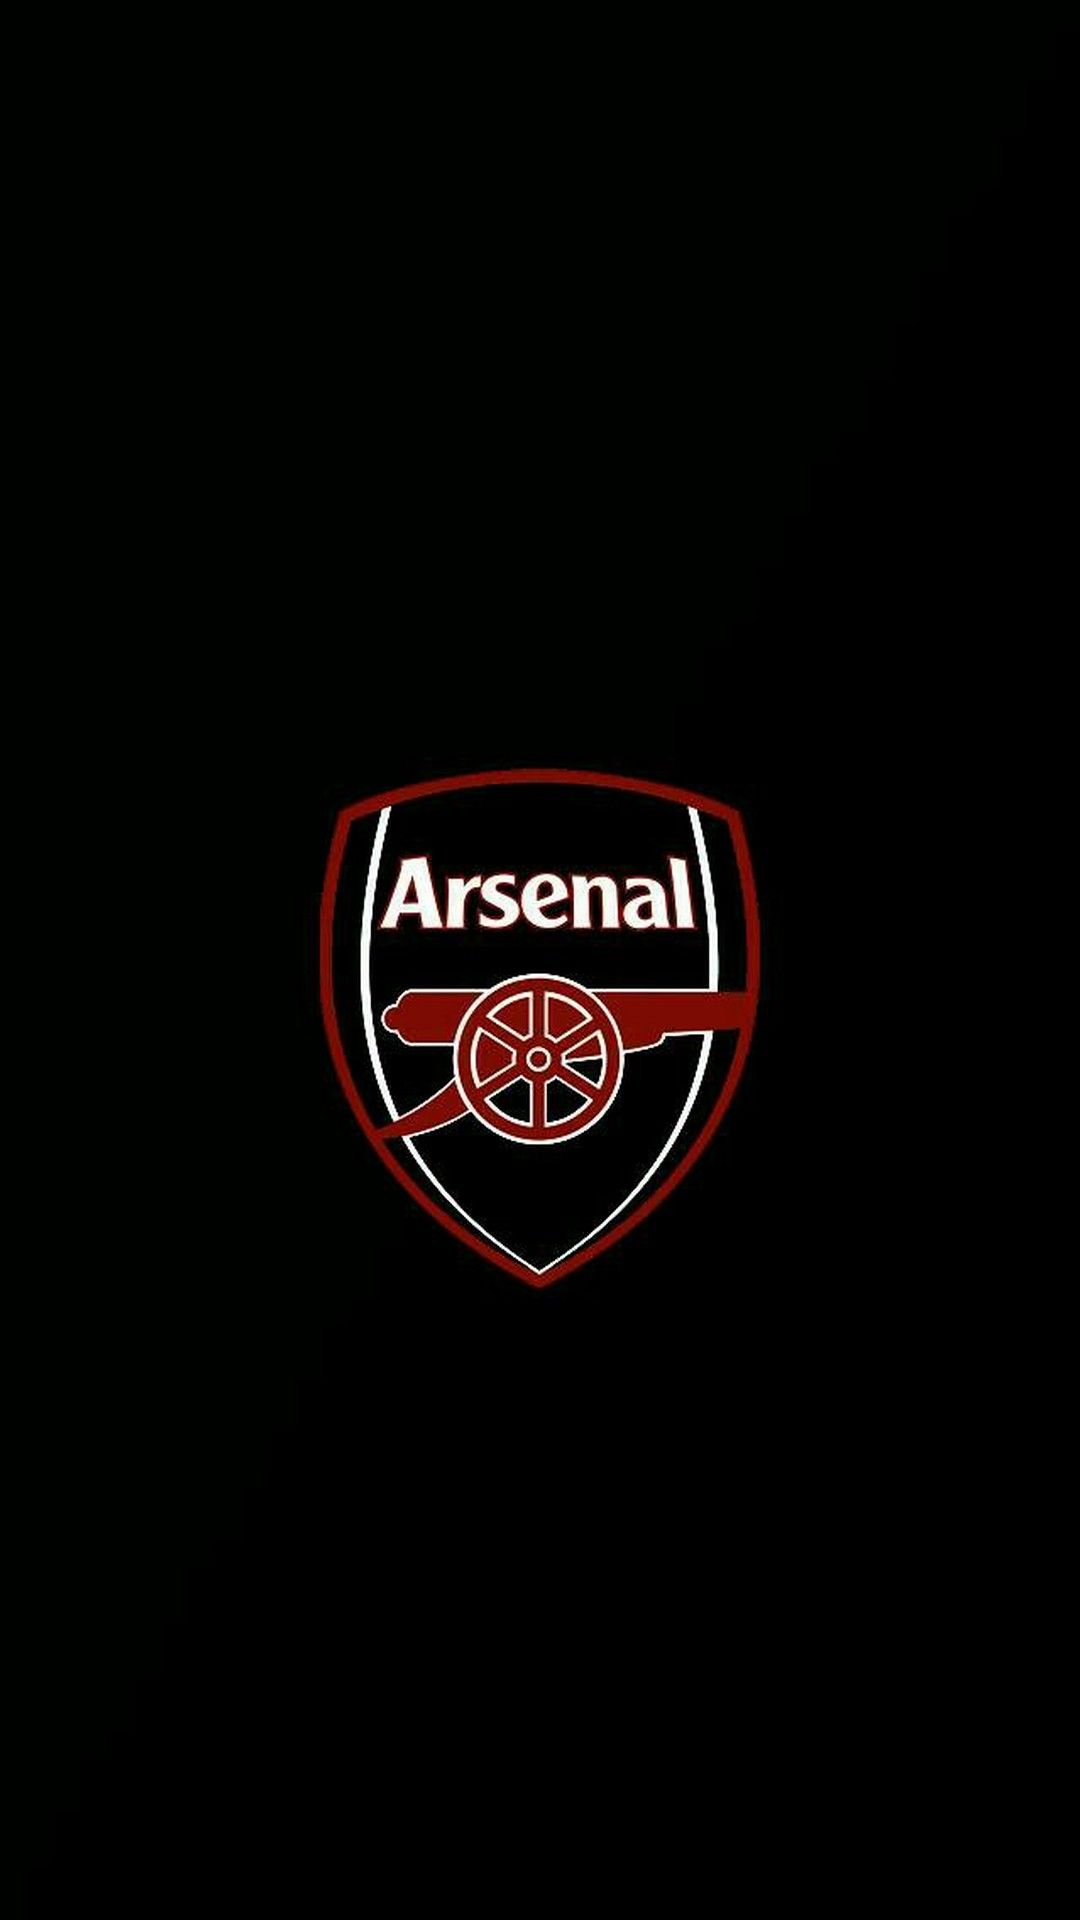 Arsenal FC Wallpaper Android   2019 1080x1920